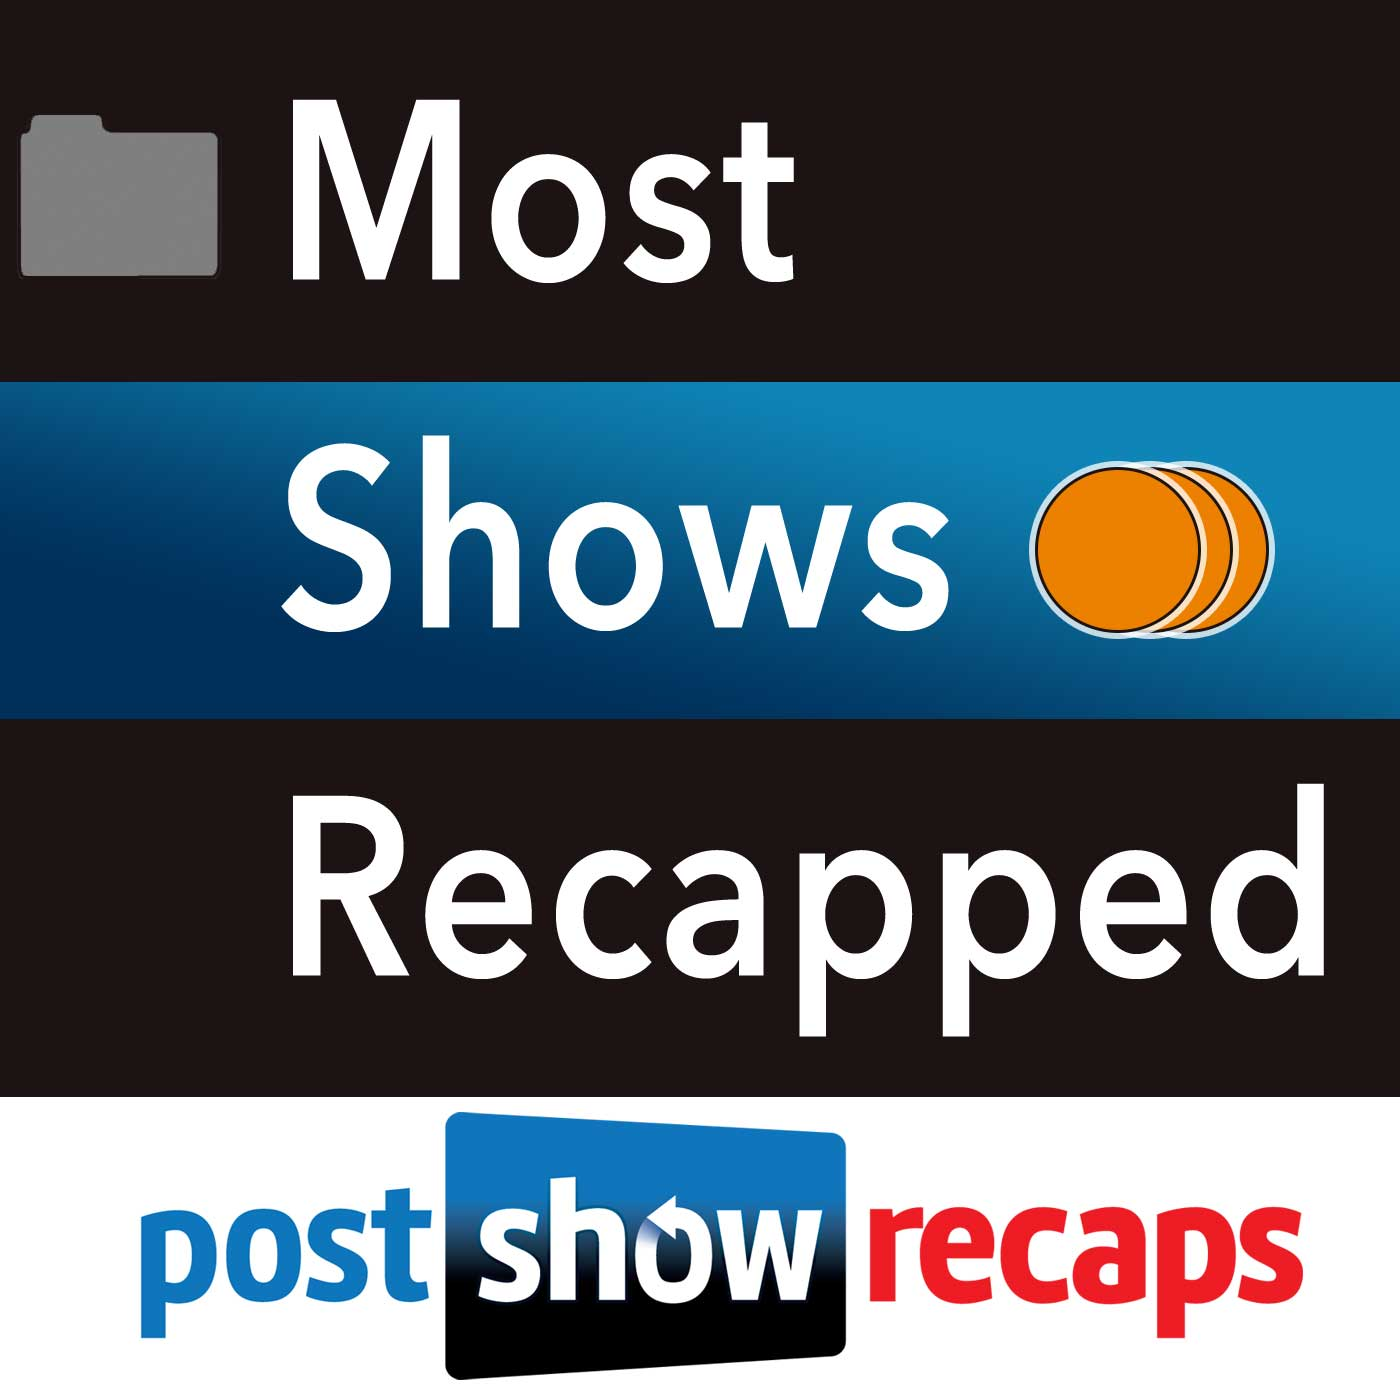 Most Shows Recapped - Post Show Recaps